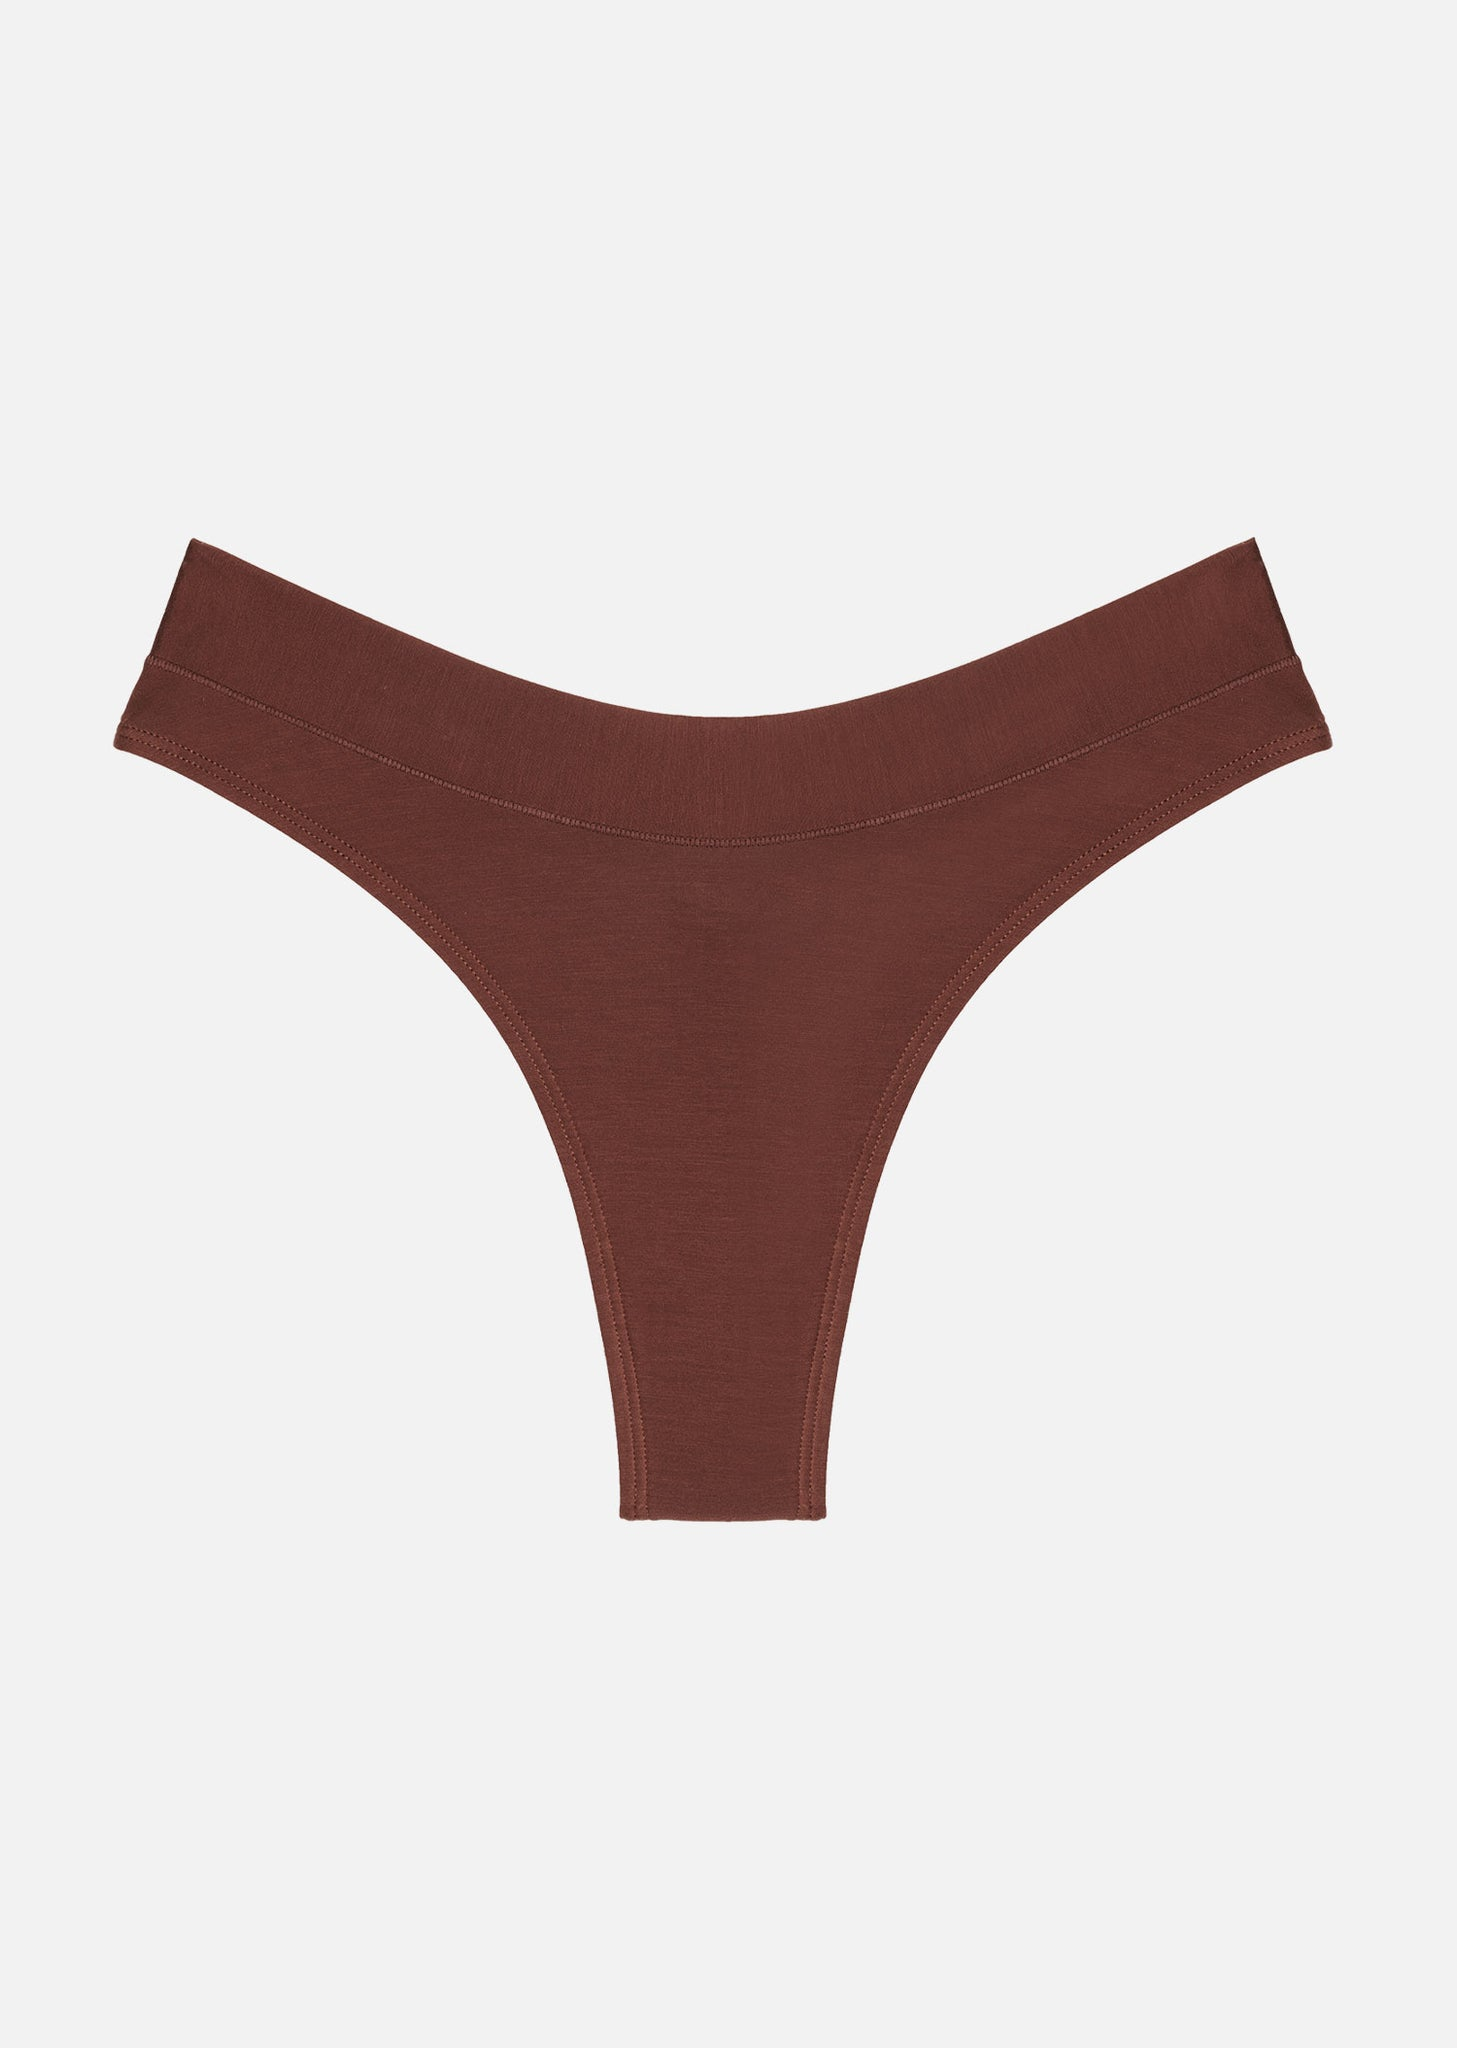 The Thong - Modal, Espresso